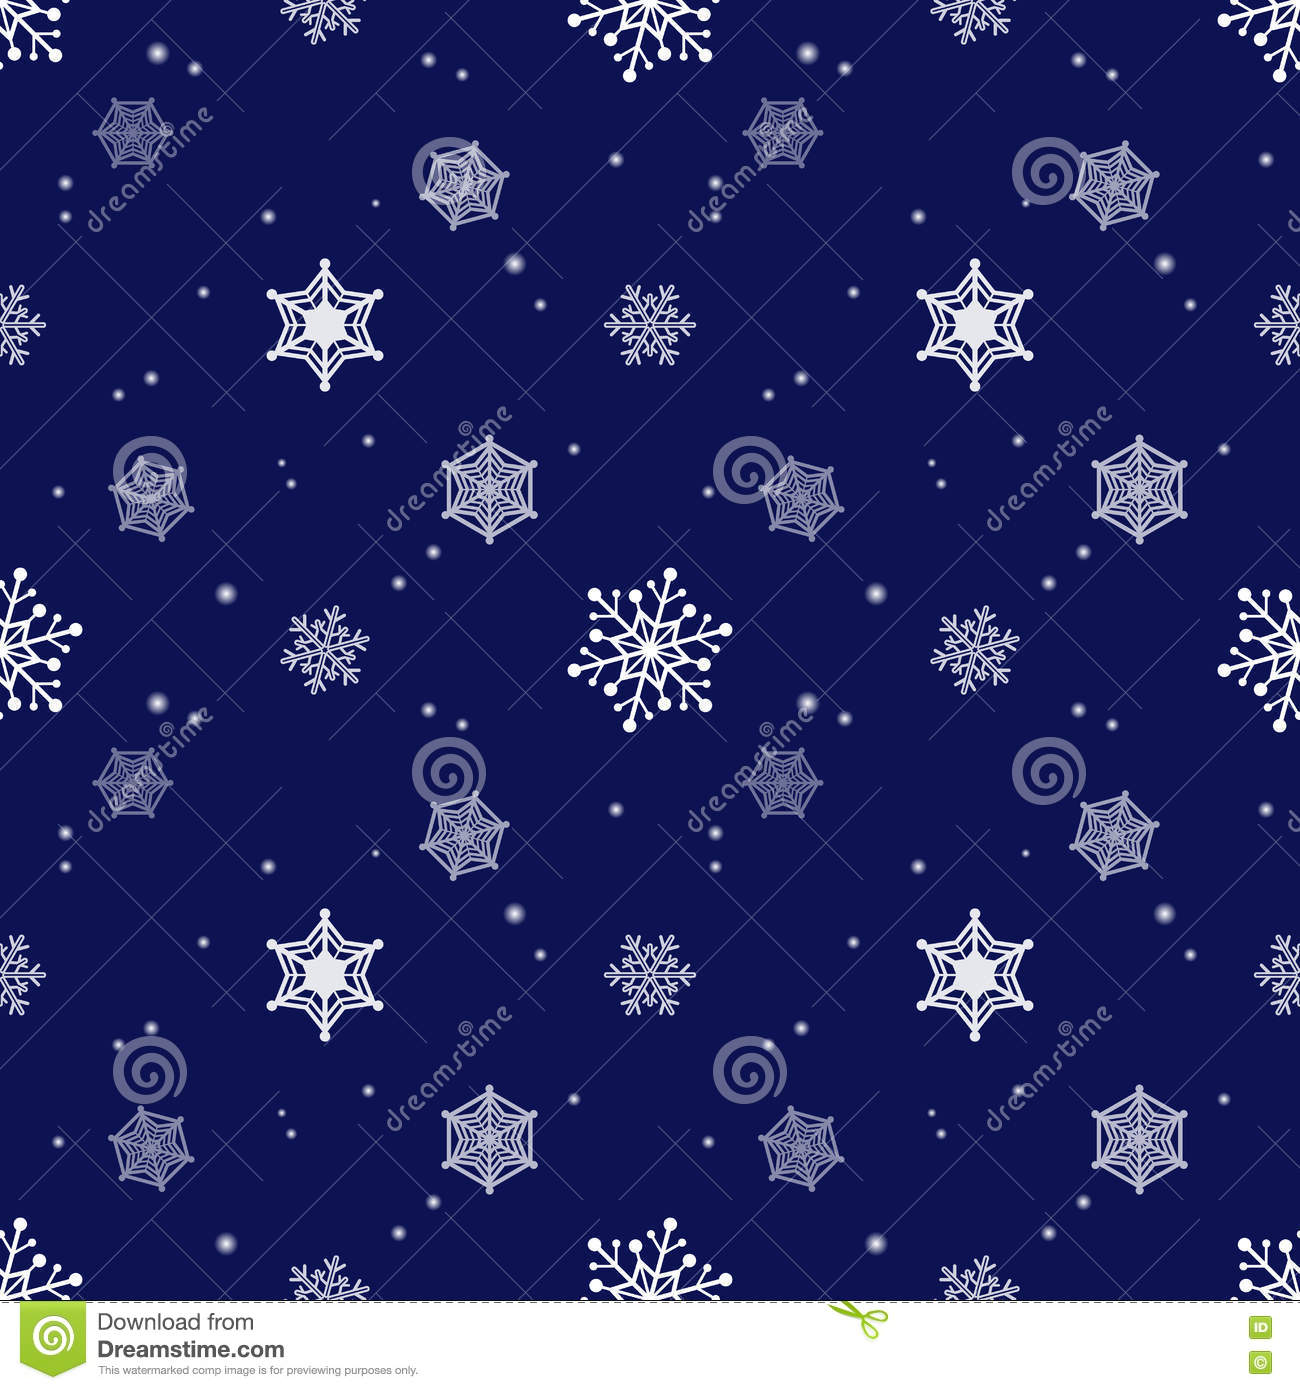 Snowflake Dark Blue Background Tint Layer Stock Vector